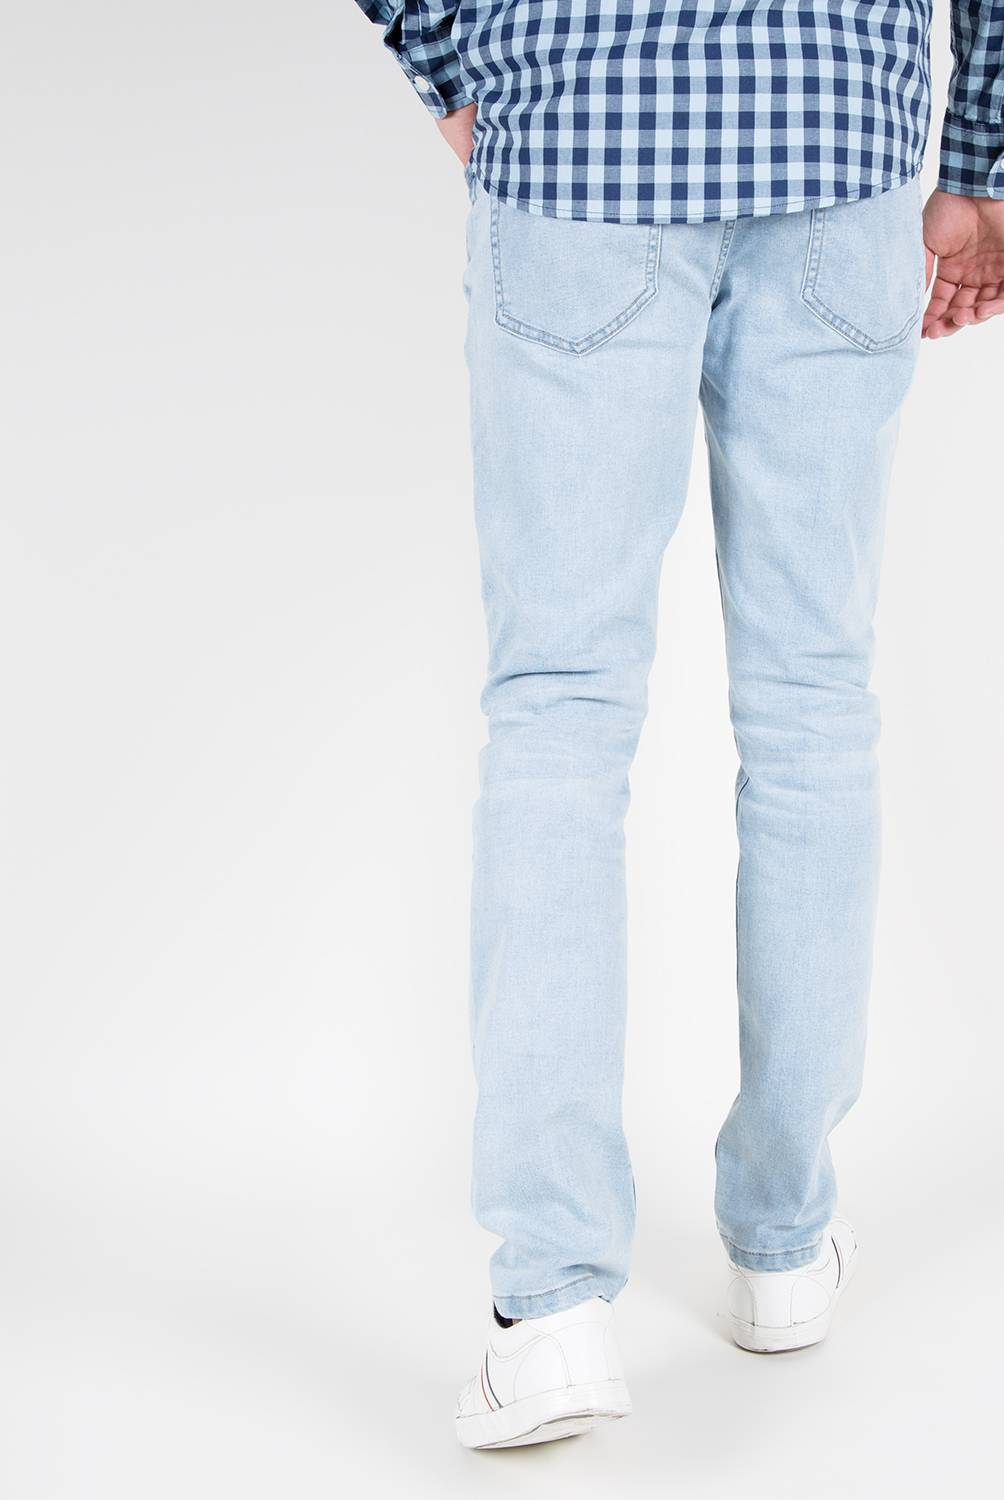 BEARCLIFF - Jean Super Skinny Hombre